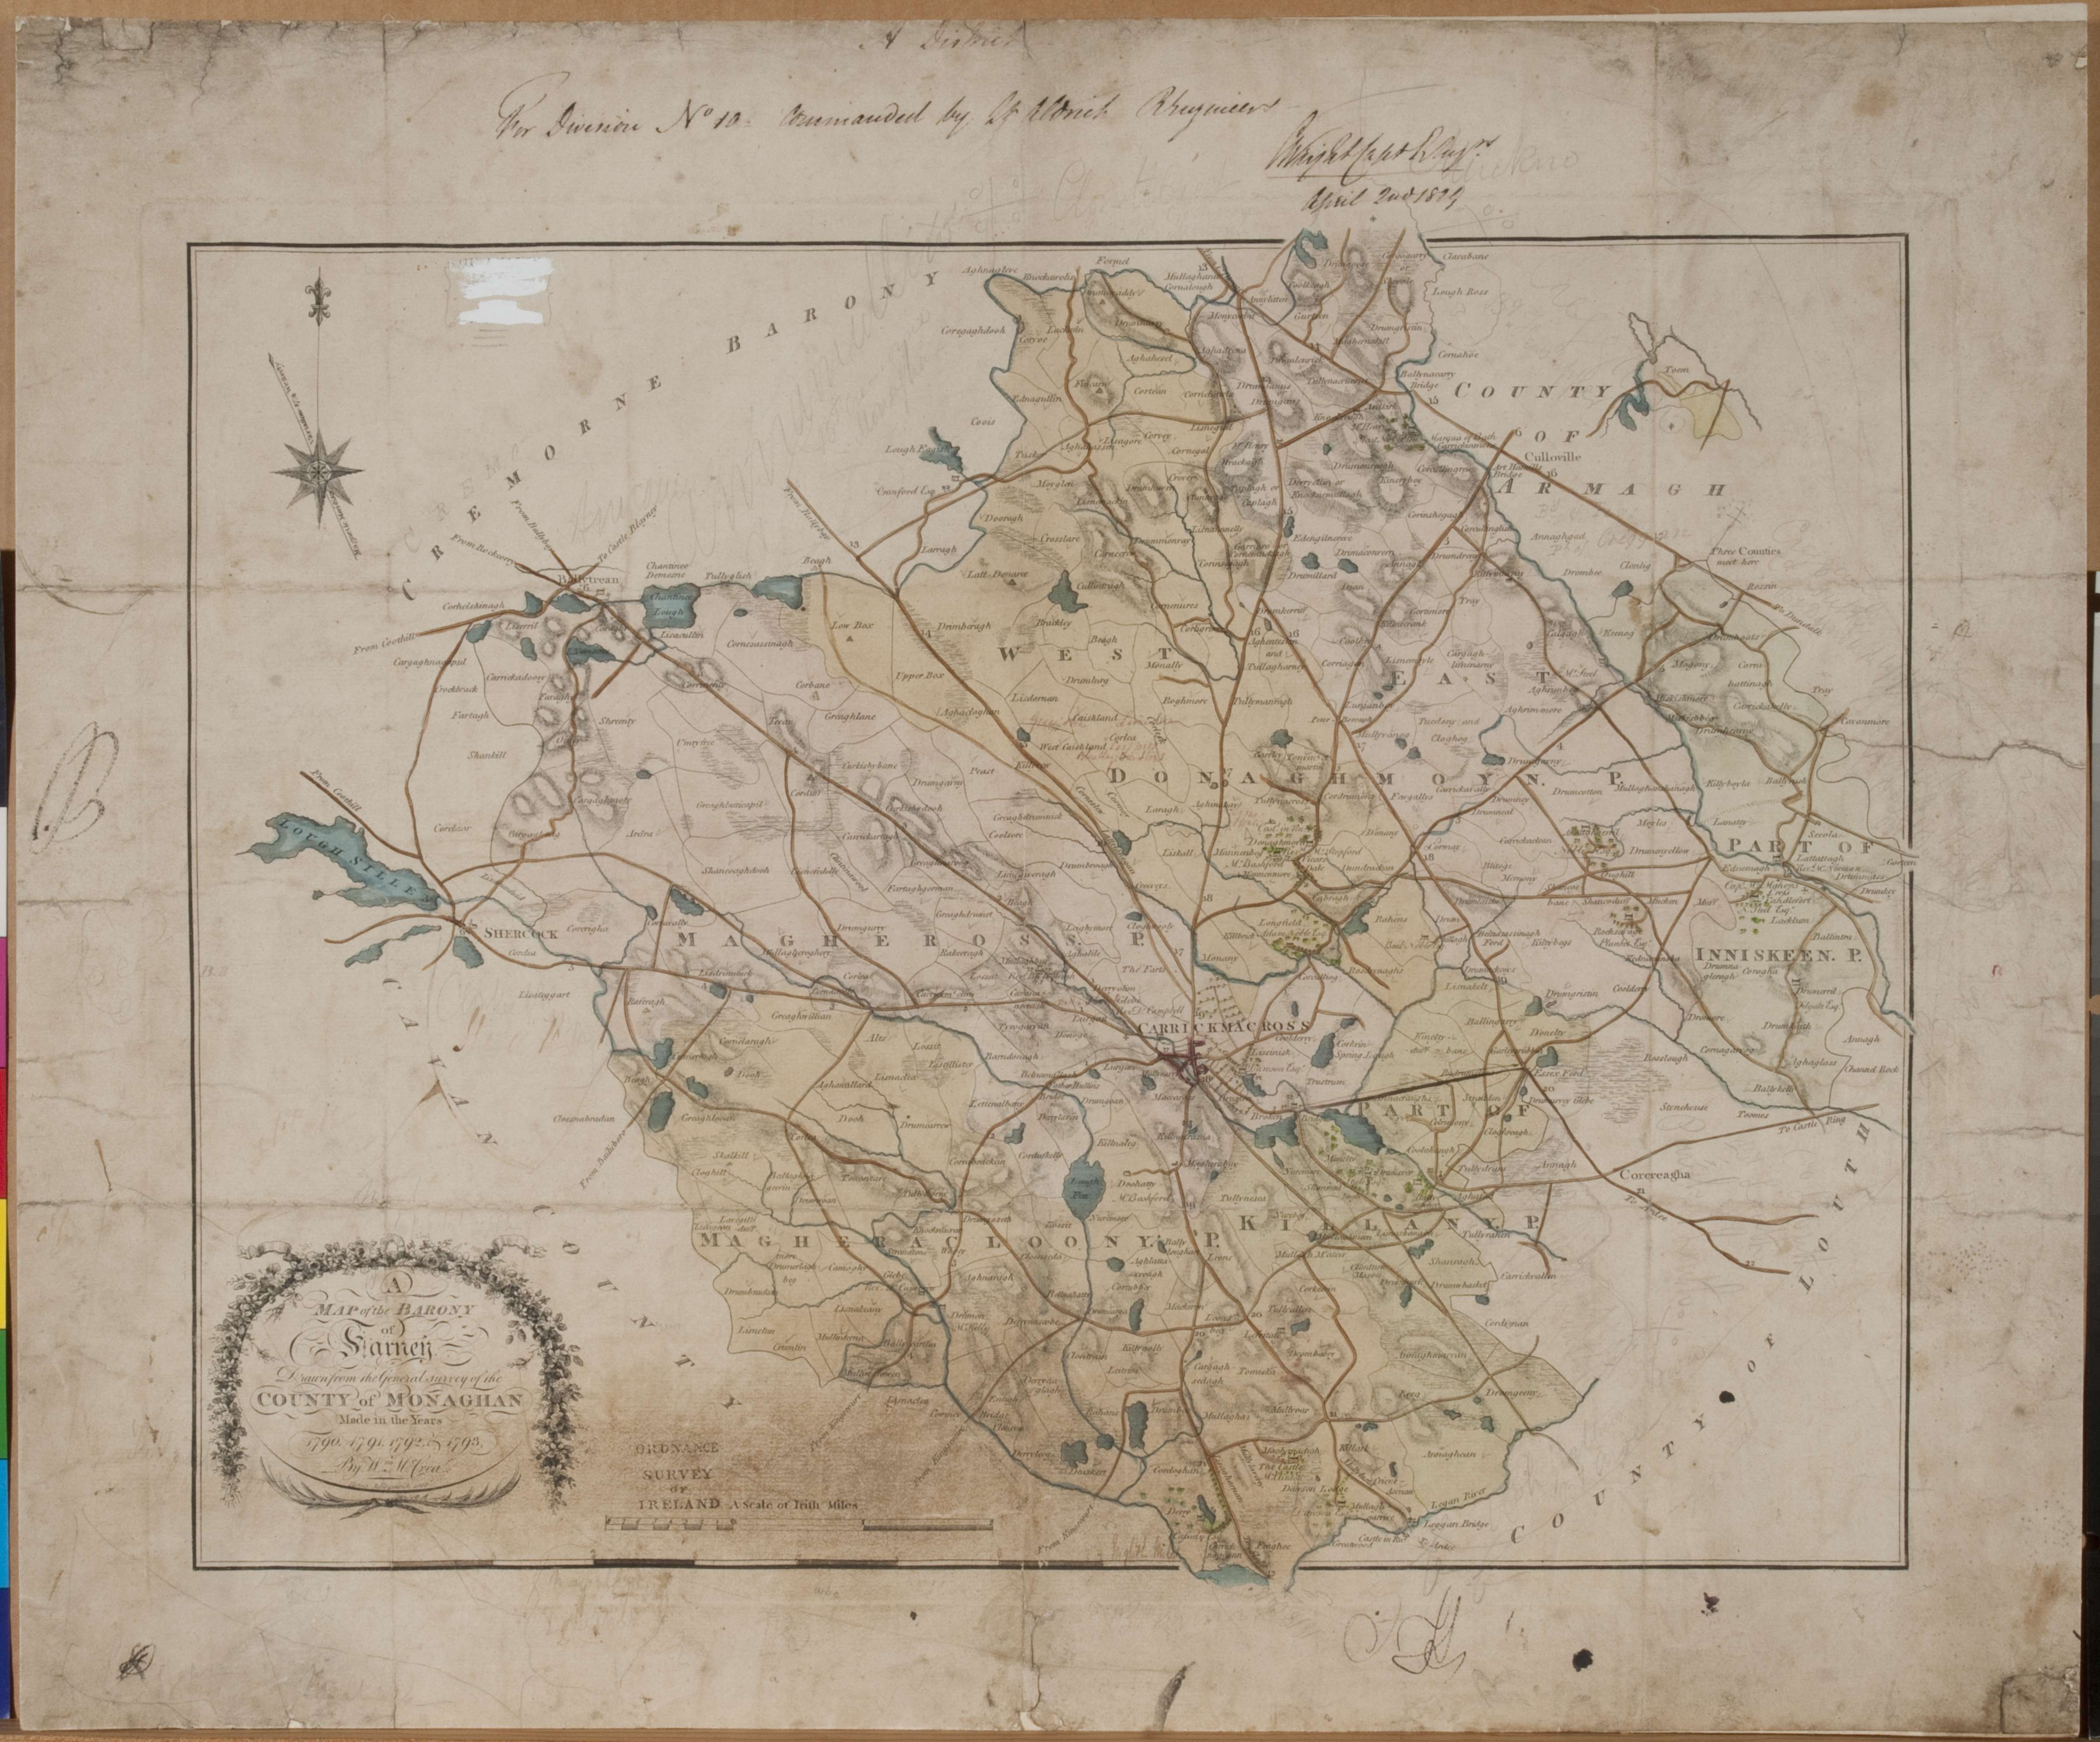 Old 1790 Map of Farney Found in Warckishire Archives